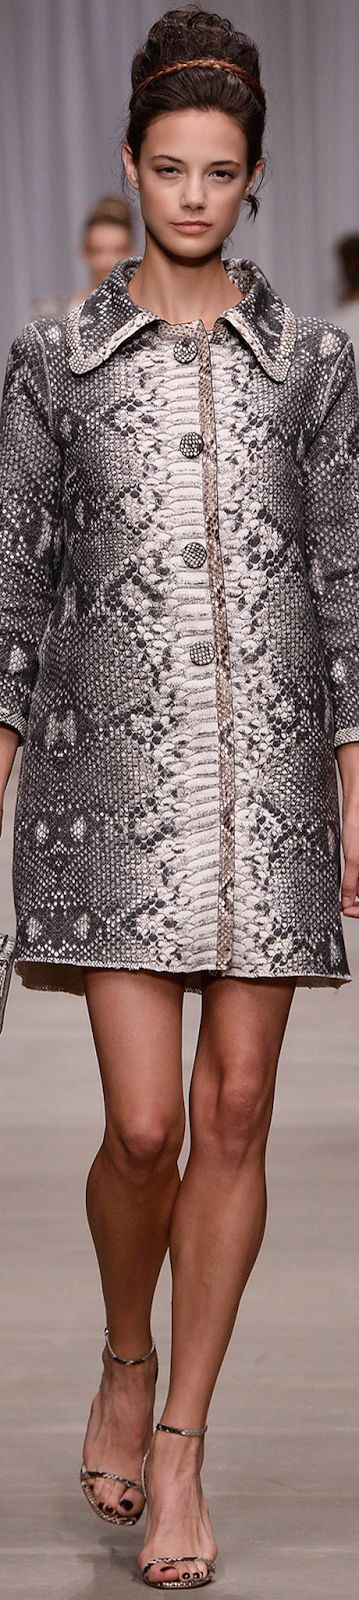 TO VIEW THE ENTIRE ERMANNO SCERVINO COLLECTION VISIT STYLE (images by  Ermanno Scervino via STYLE)